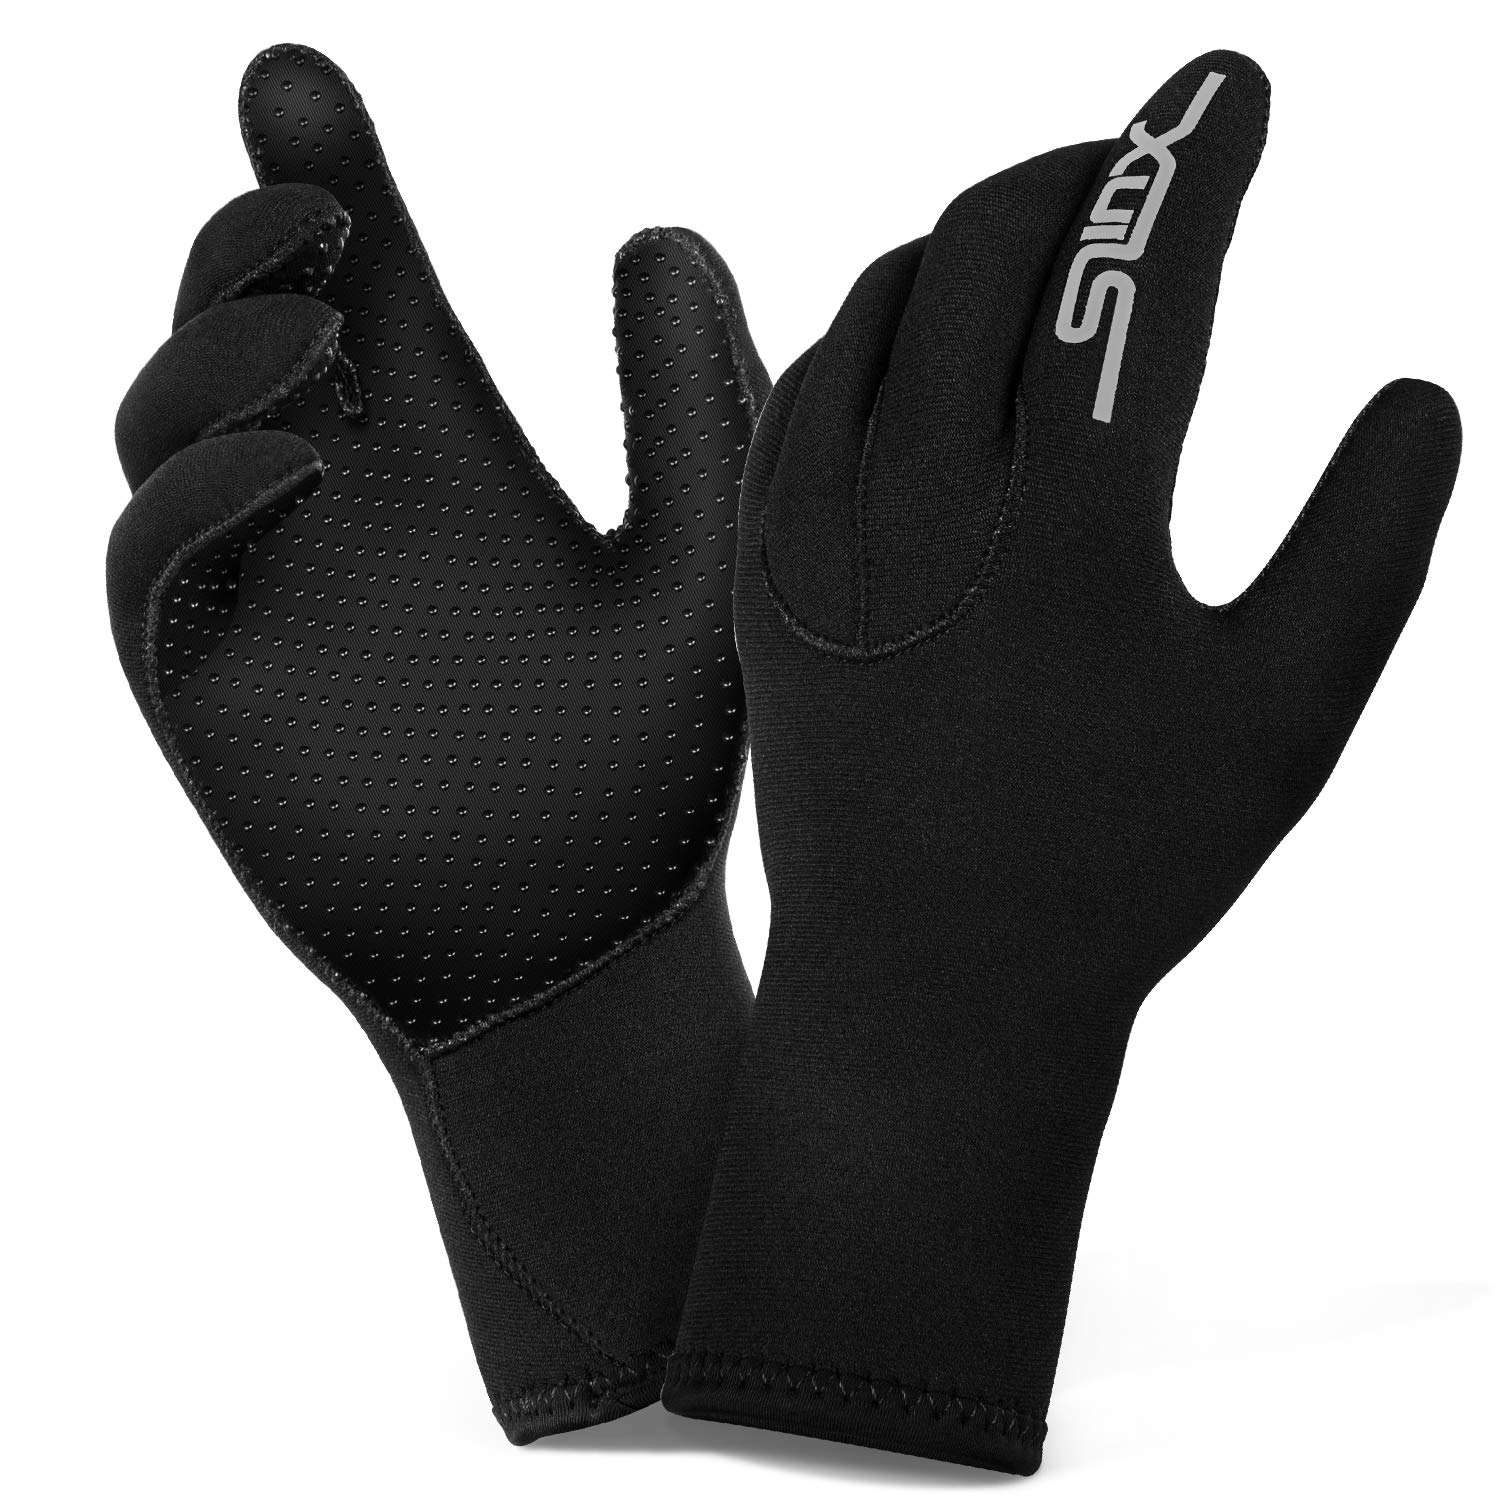 ZIPOUTE Neoprene Diving Gloves, 3MM Five Finger Wetsuit Gloves for Scuba-Diving,Snorkeling, Surfing, Kayaking, Cleaning Pond and All Water Activities for Men and Women by ZIPOUTE